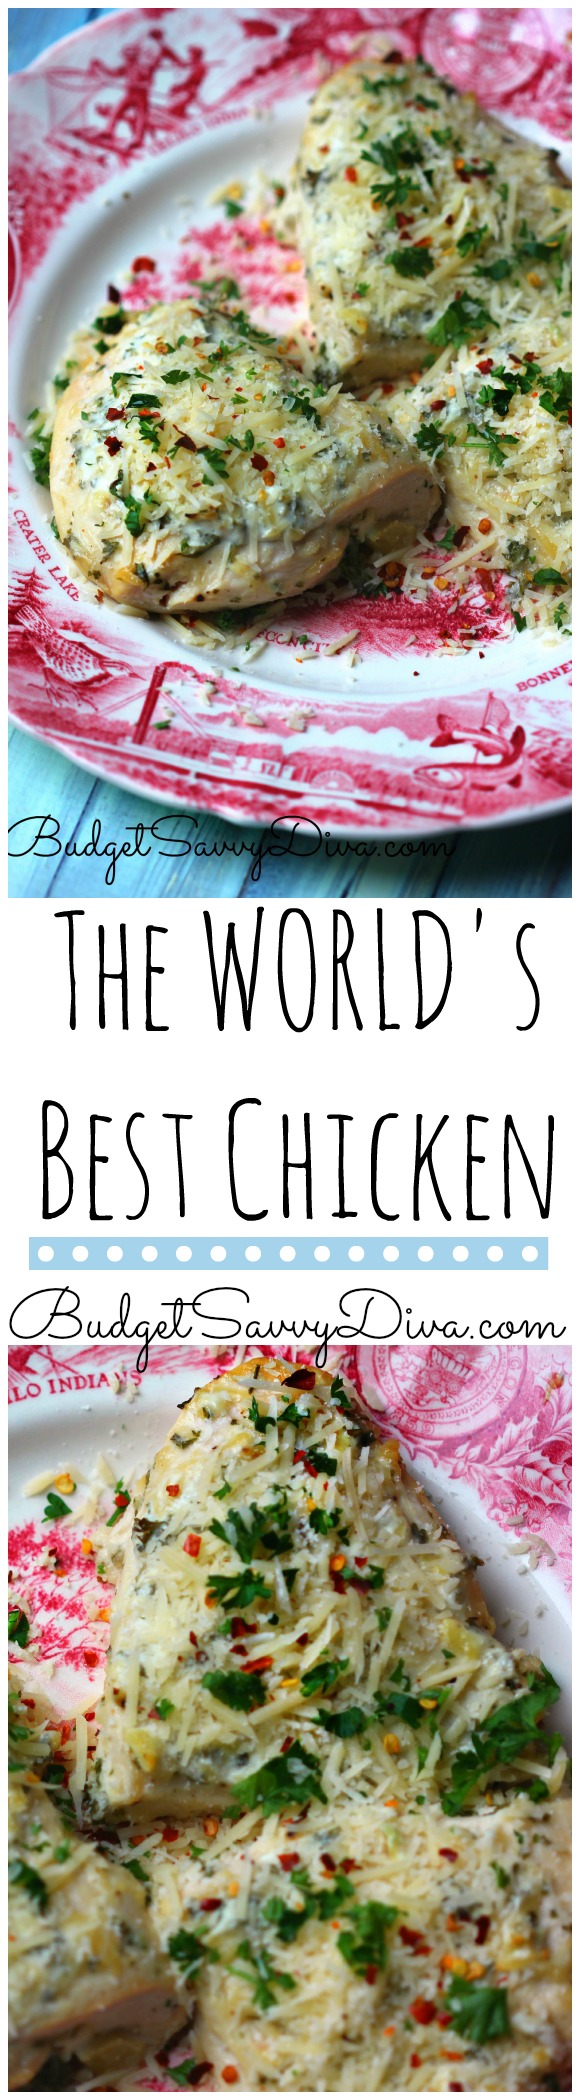 The World's Best Chicken Recipe